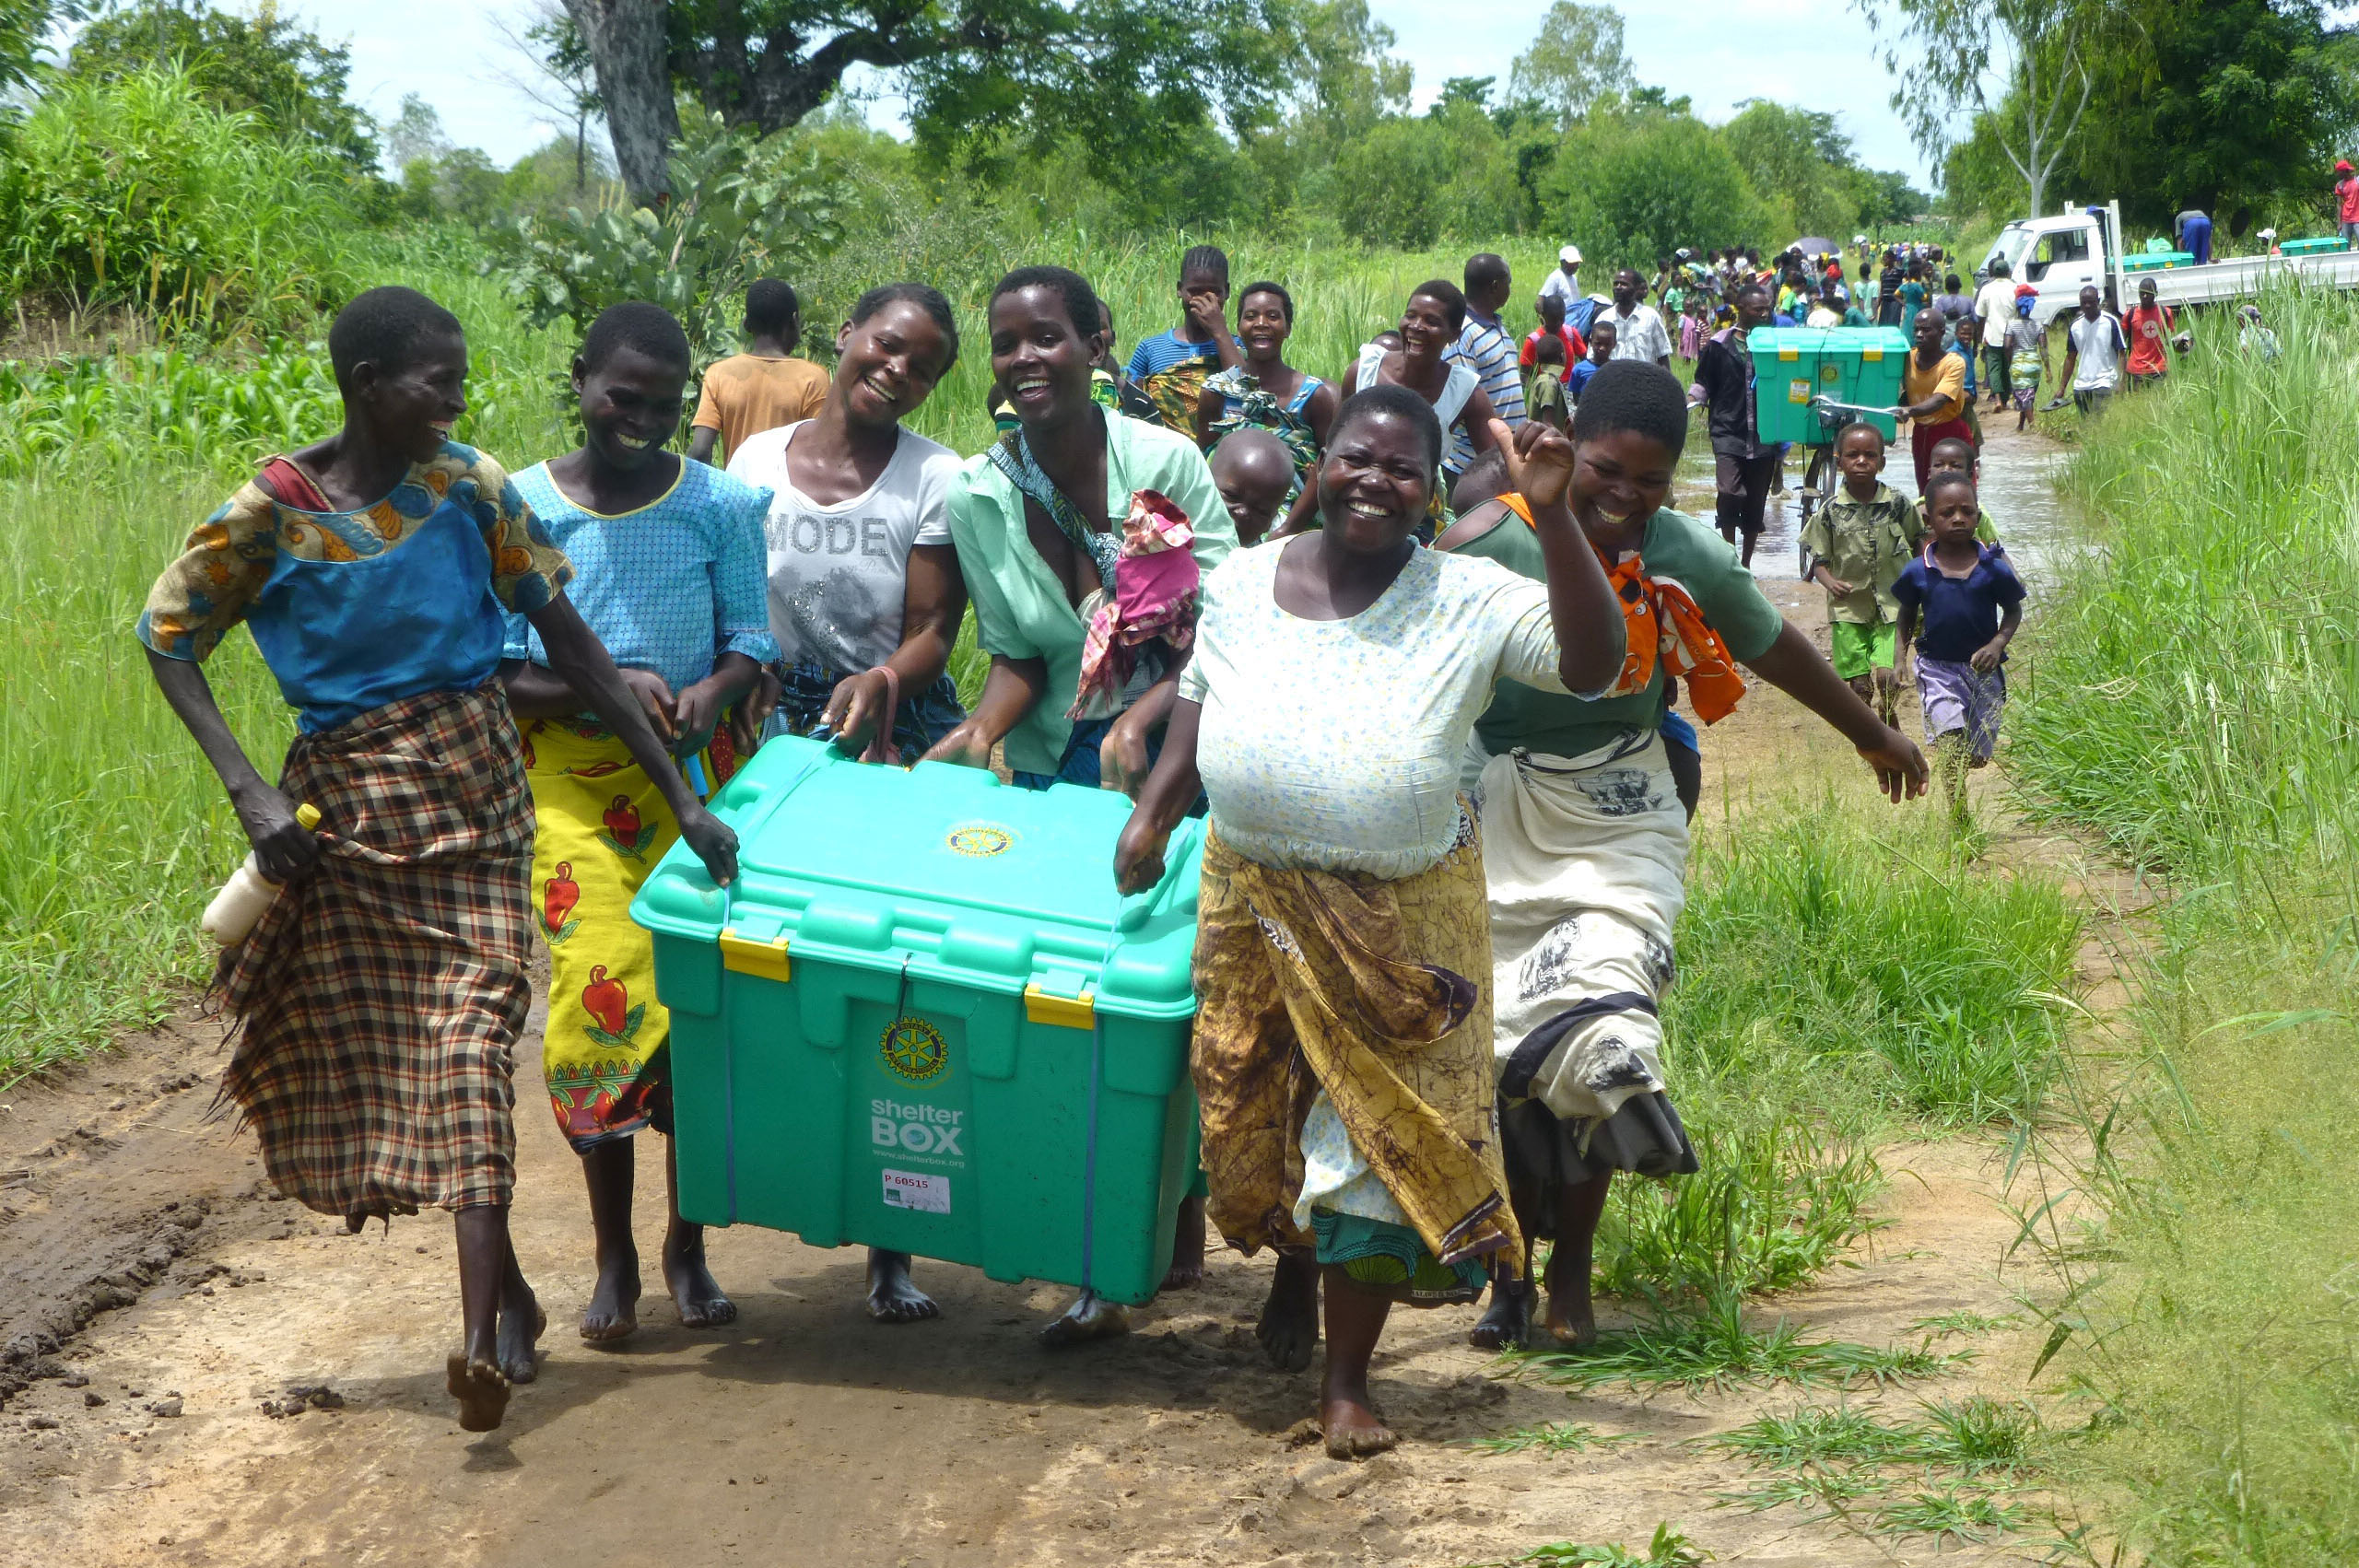 Malawians receiving Shelterboxes